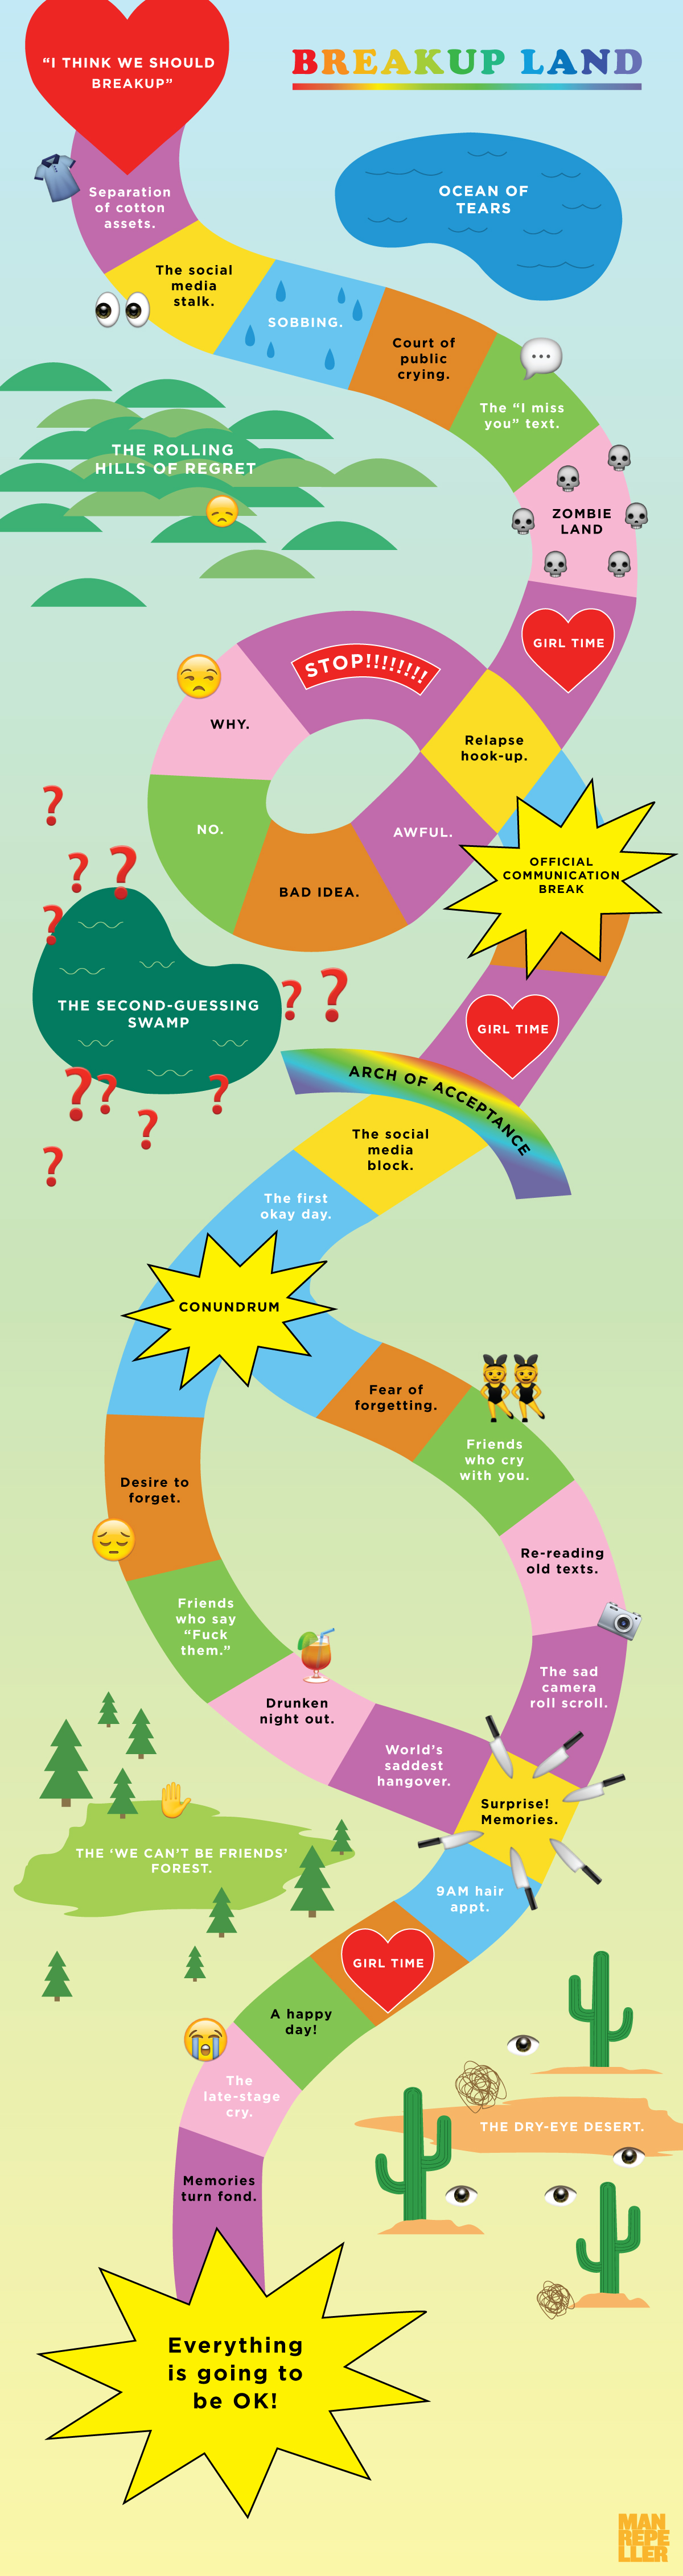 The-Familiar-Process-of-Breaking-Up--A-Visual-Guide-Man-Repeller-final-3